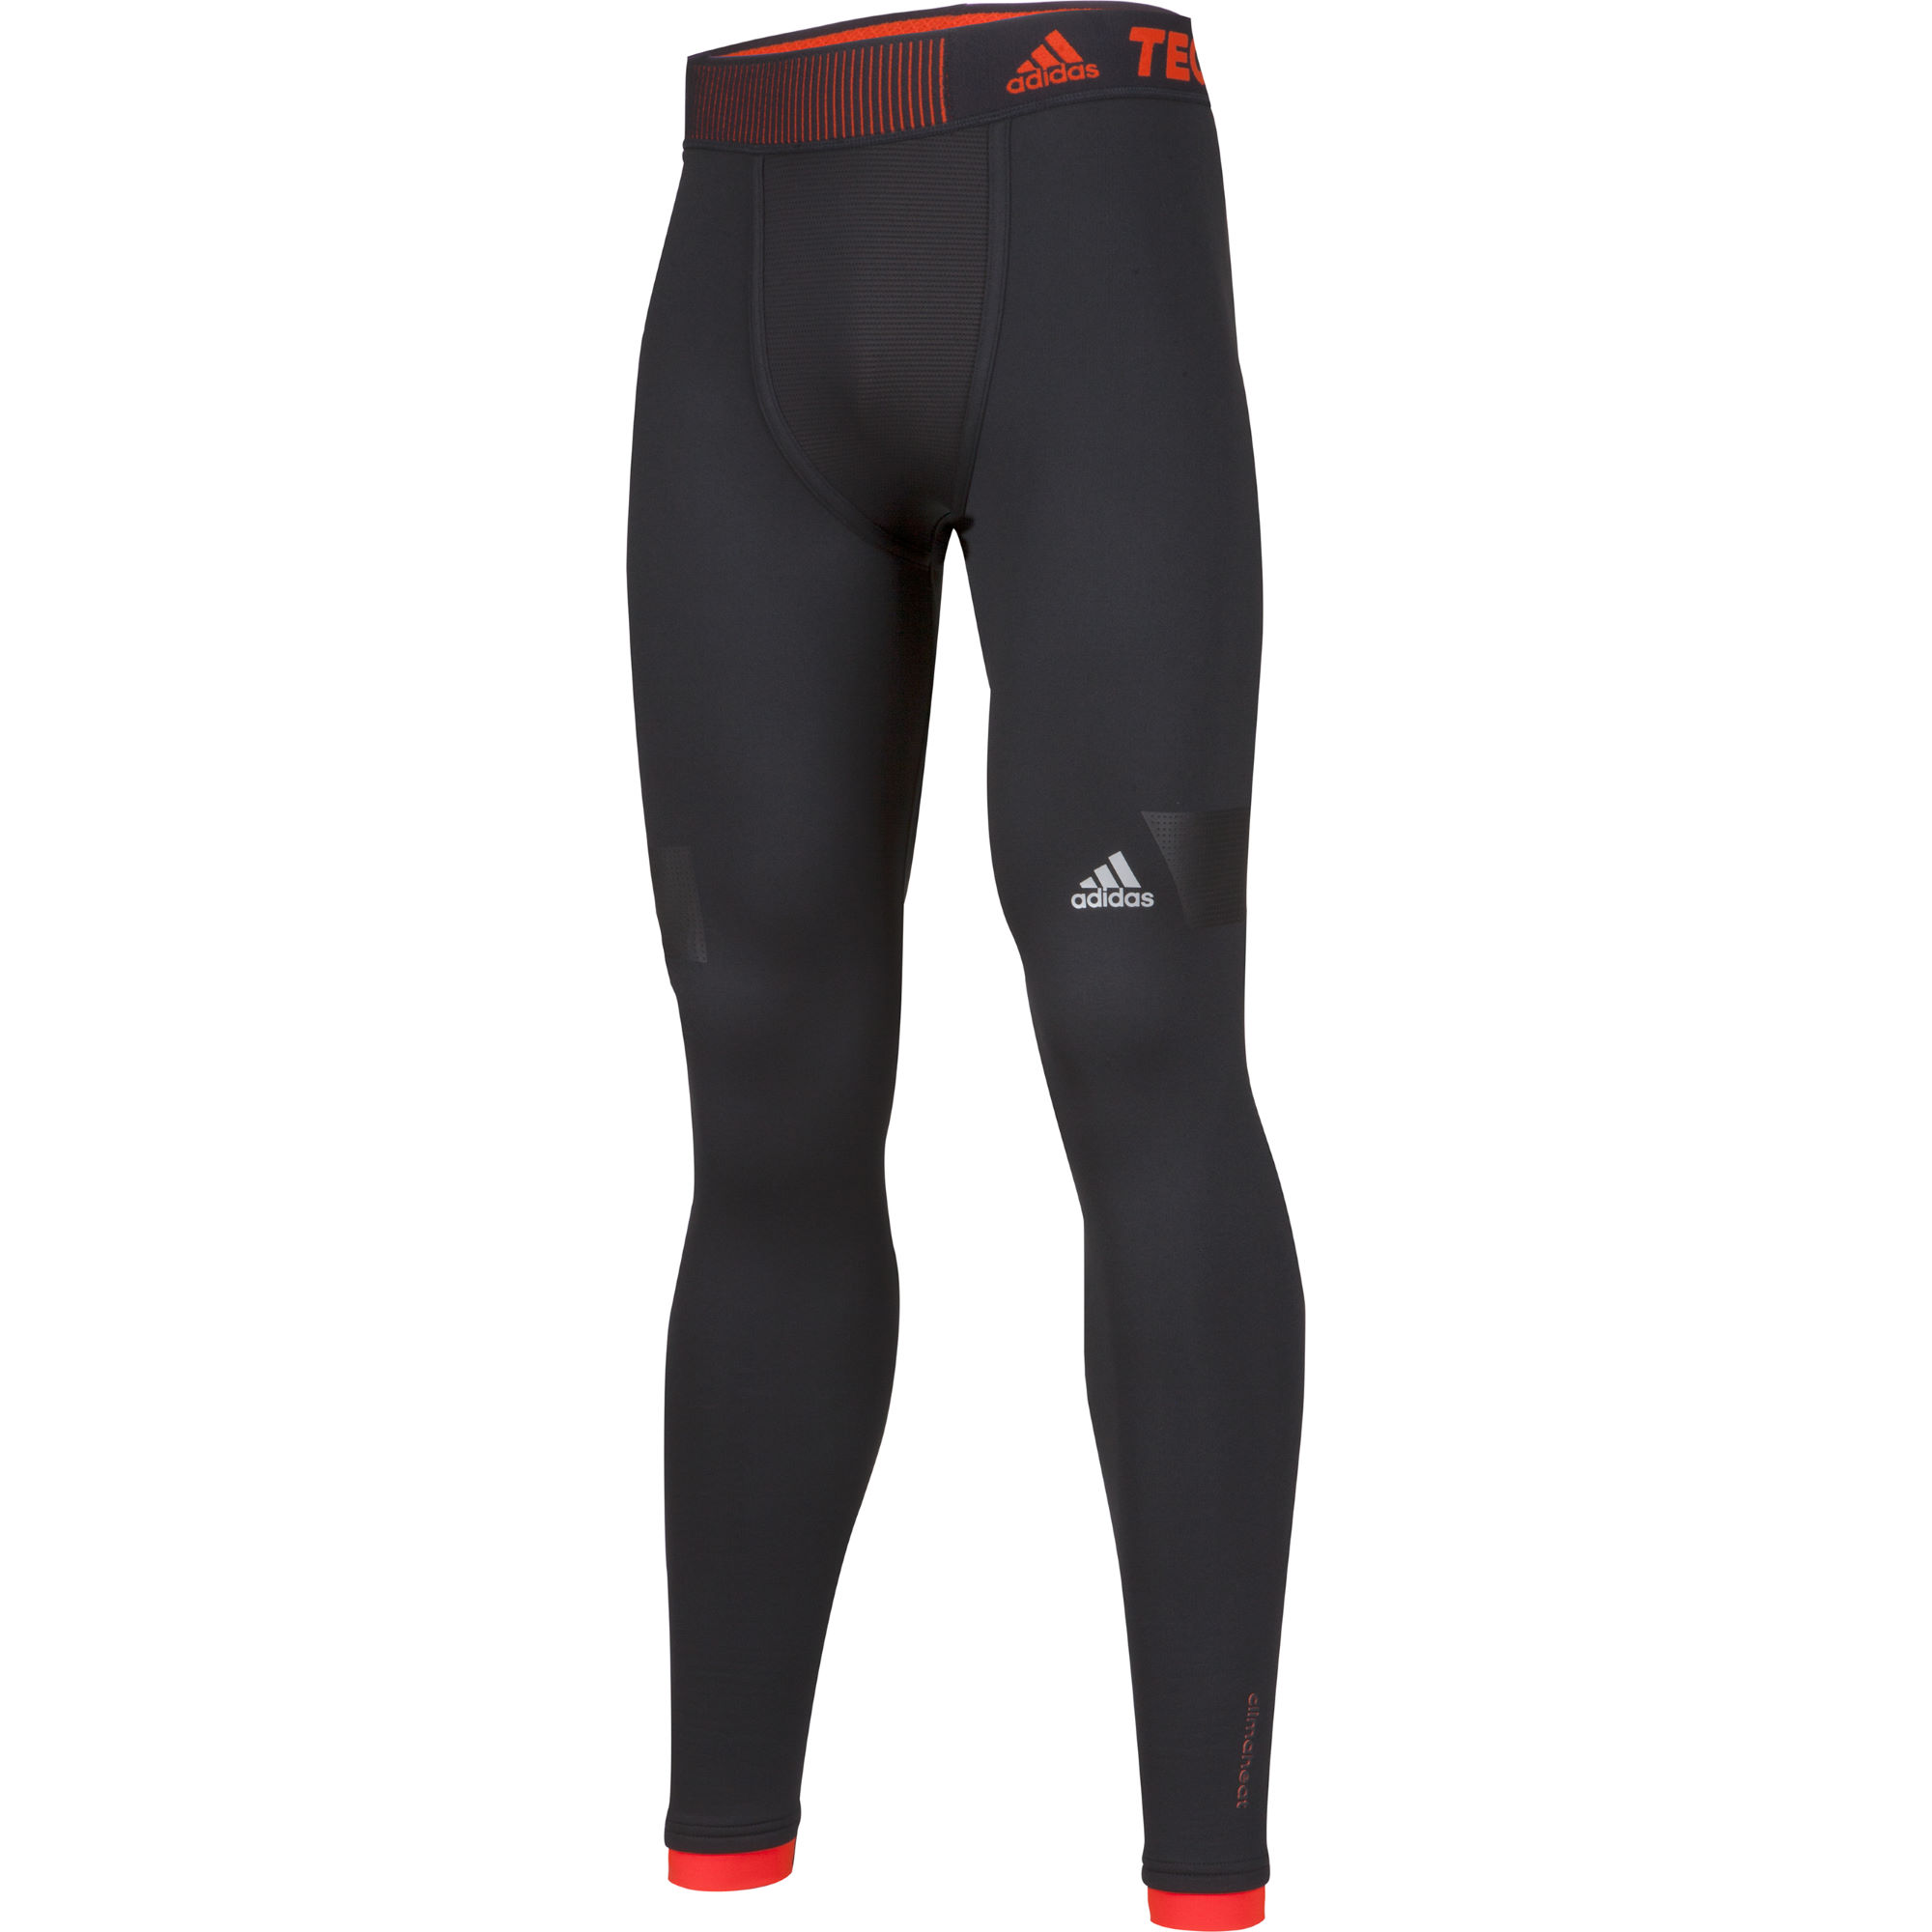 8775fc0b84382 Wiggle Cycle To Work   adidas Techfit Climaheat Tight 2.0 - AW15 ...